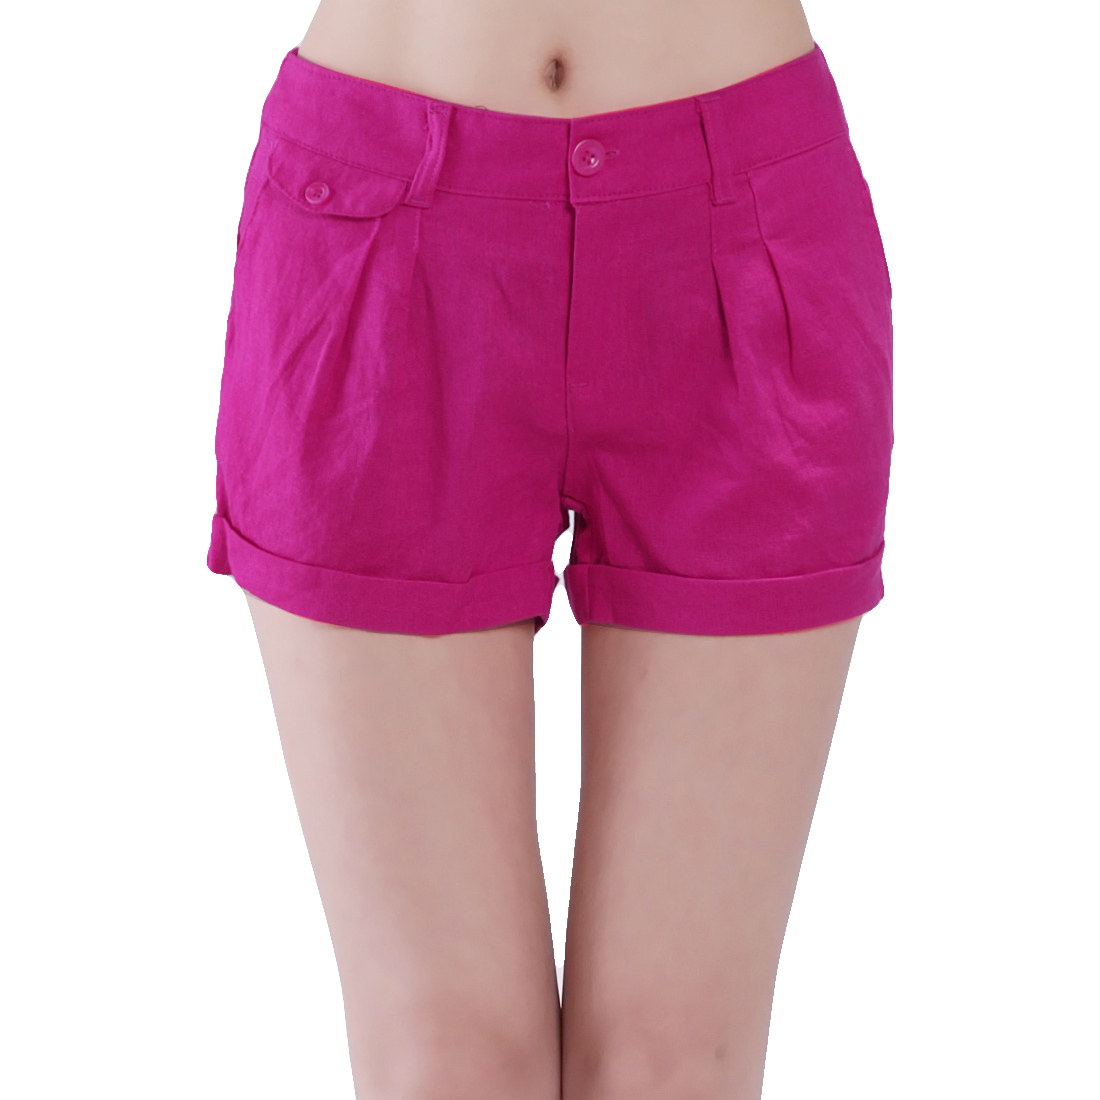 Summer Low Waist Belt Loop Zipper Shorts Pants Fuchsia S for Women